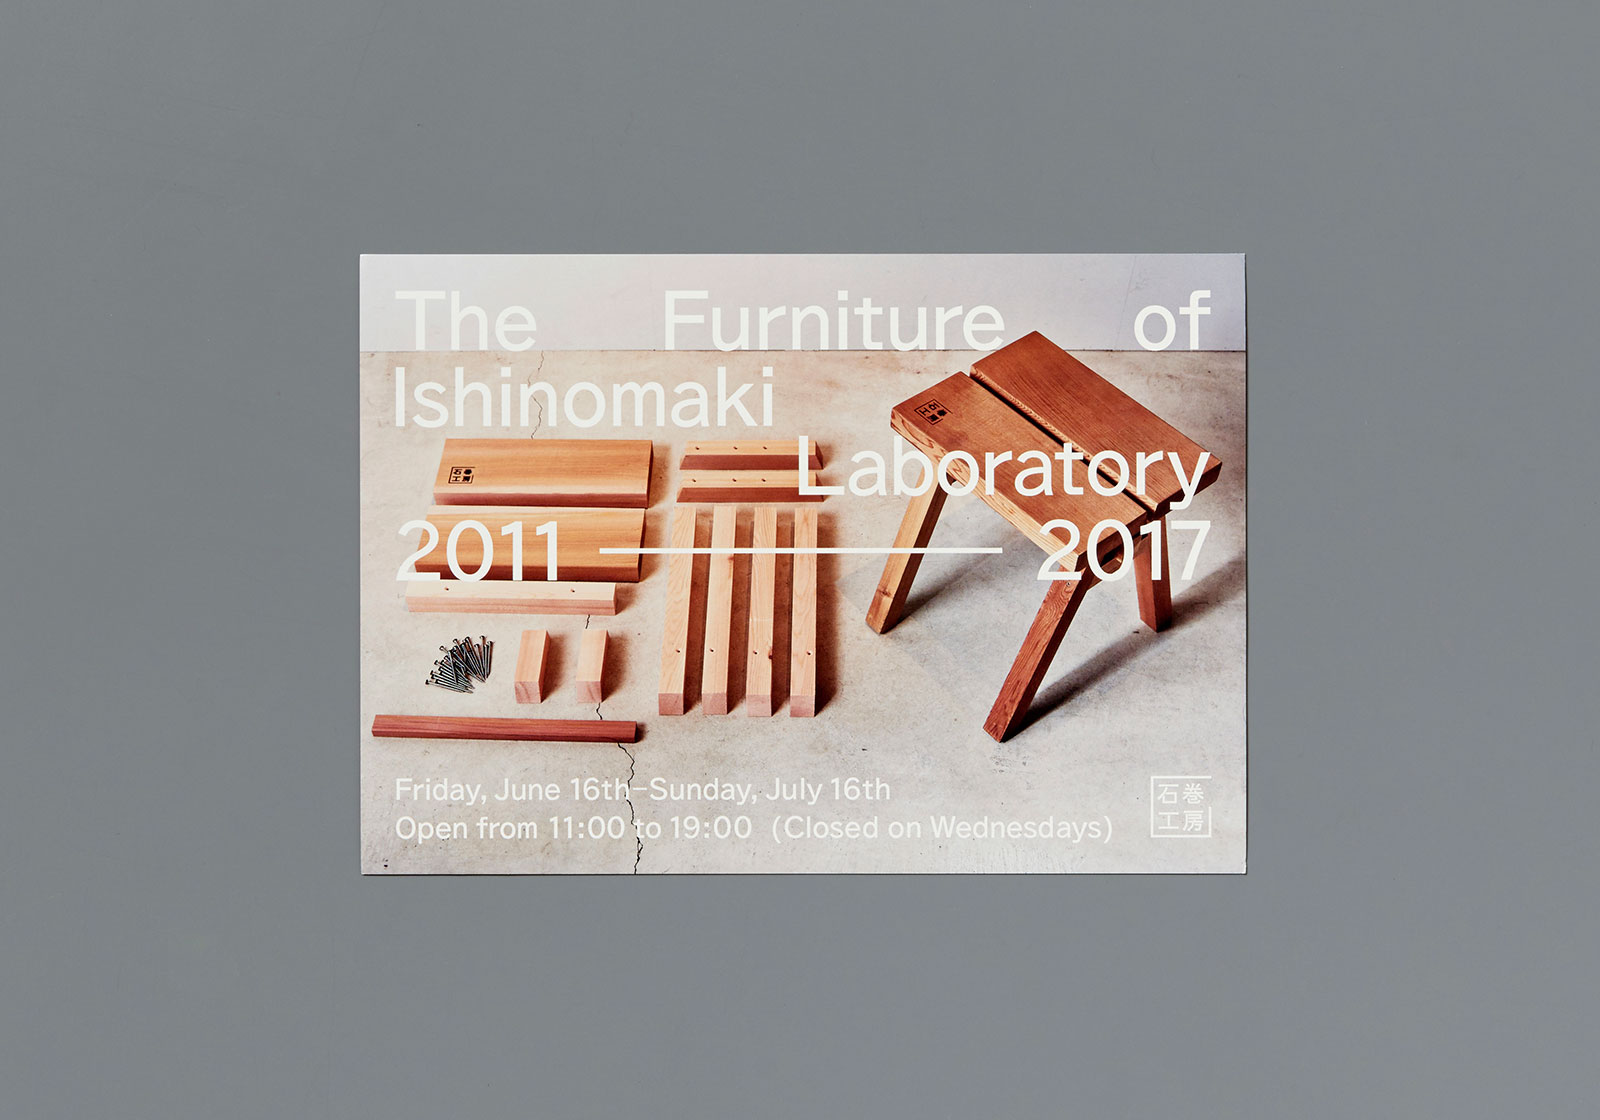 The Furniture of Ishinomaki Laboratory 2011–2017